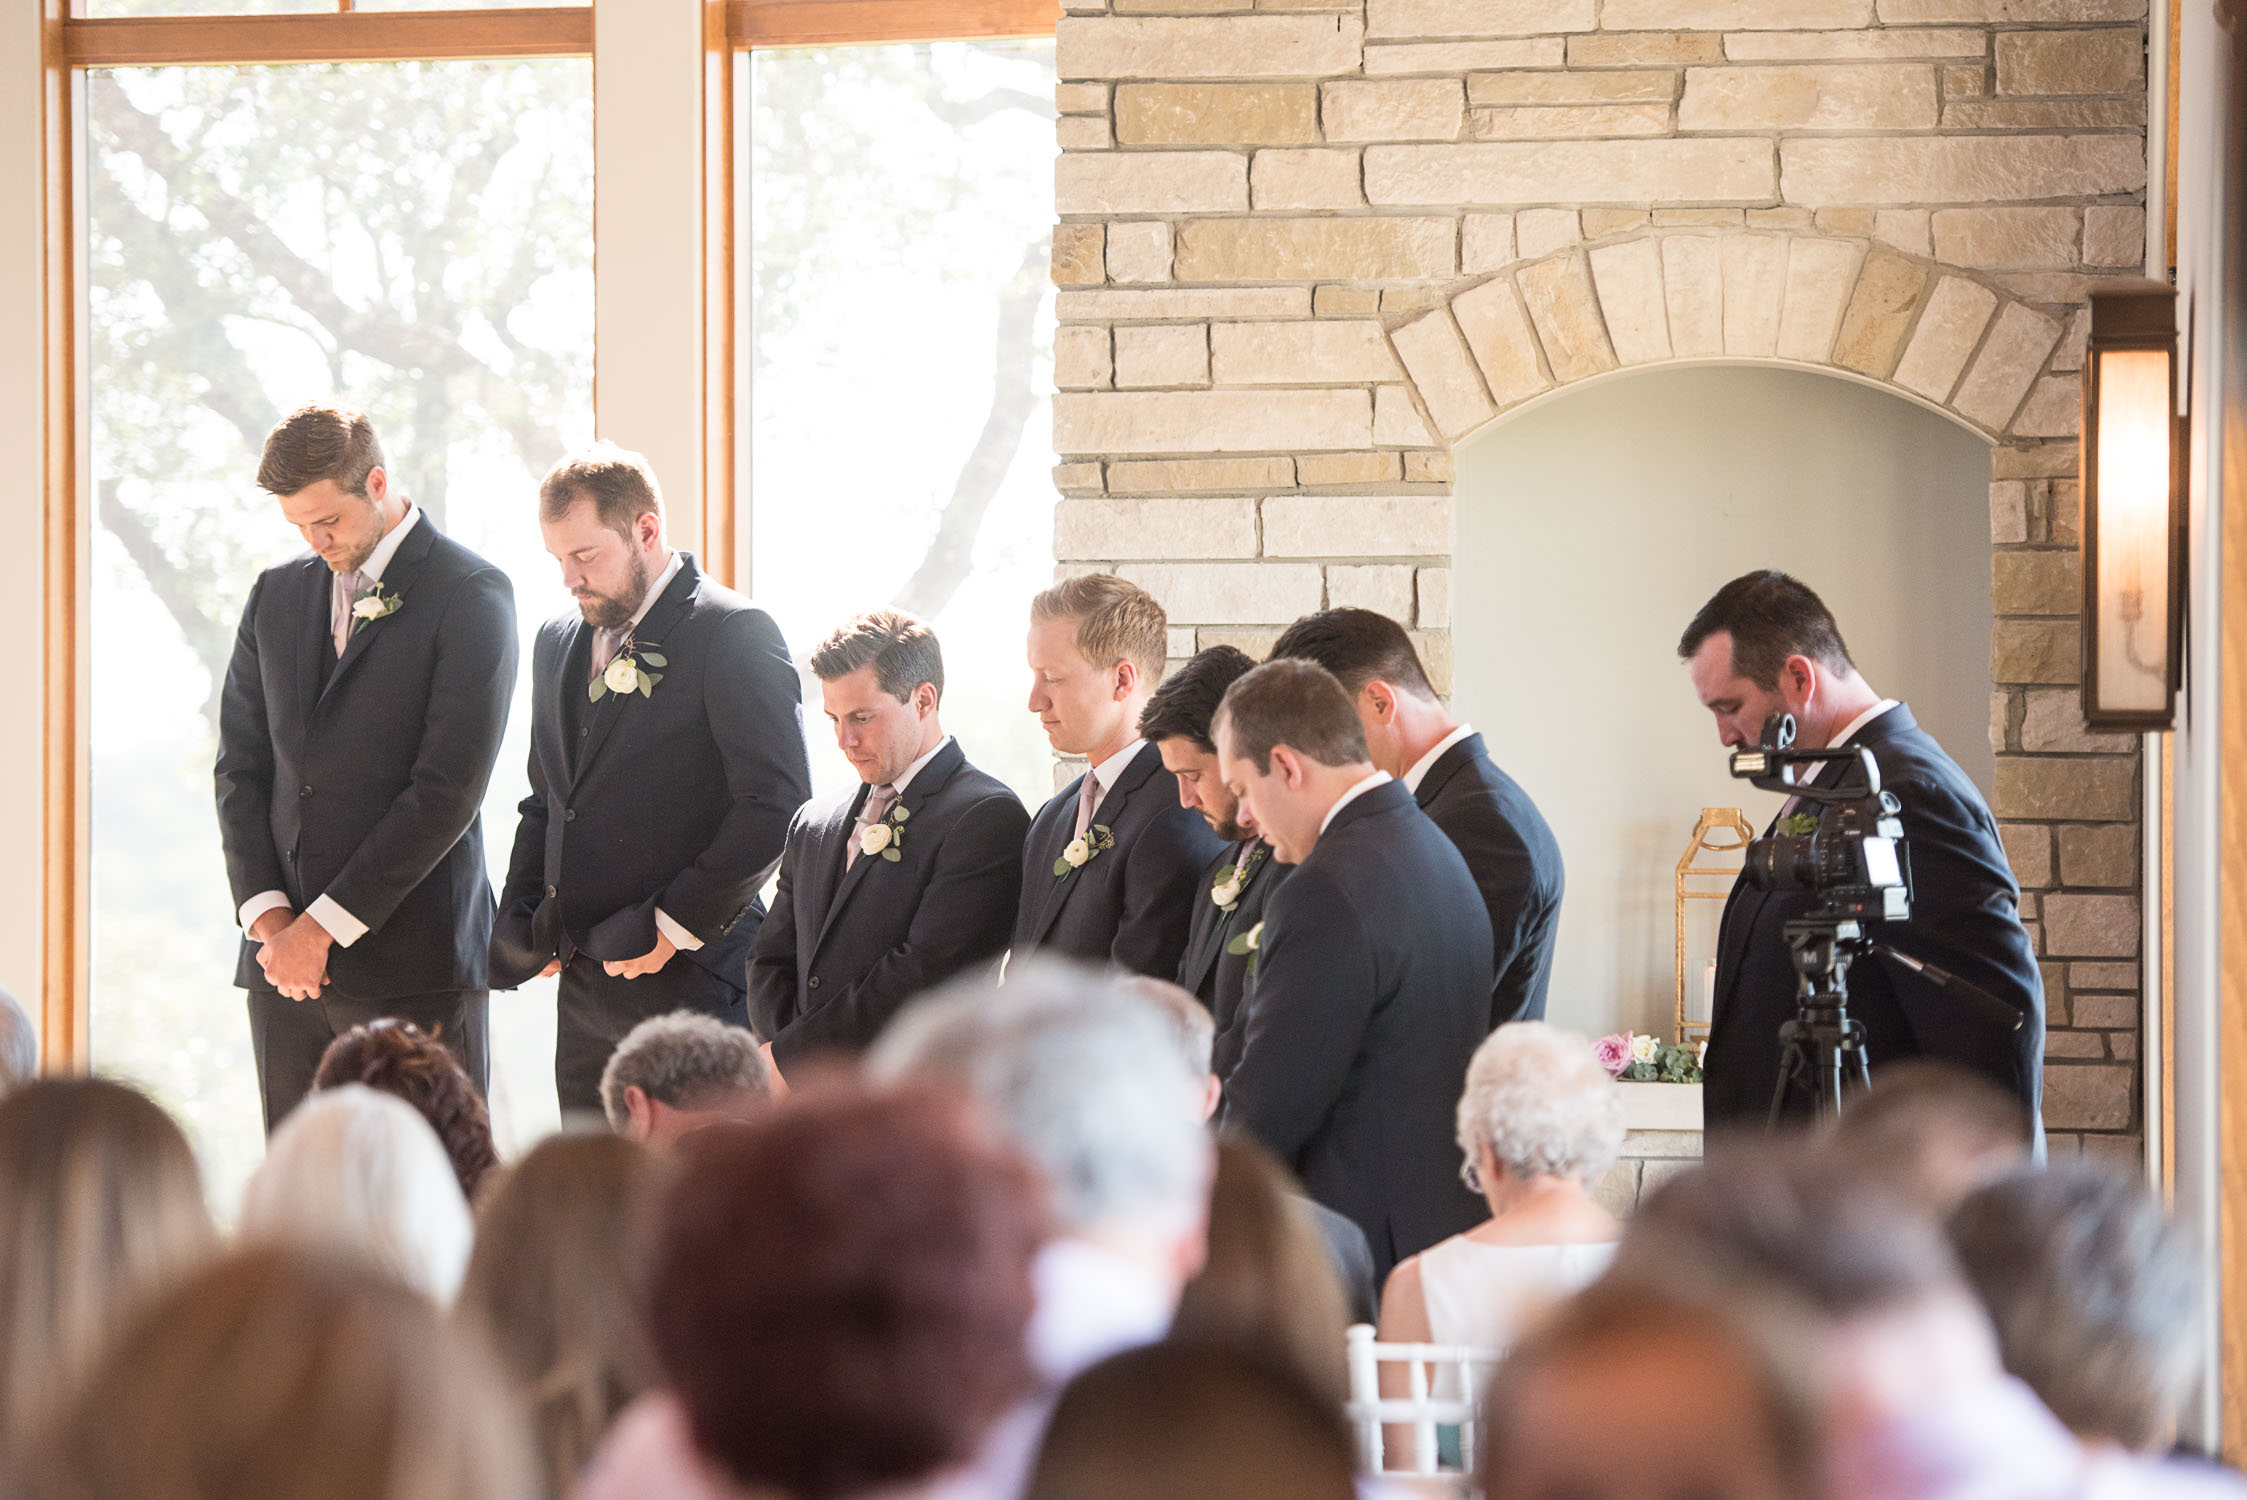 Hinton Wedding at Canyonwood Ridge Dripping Springs Texas Wedding Photography-94.jpg